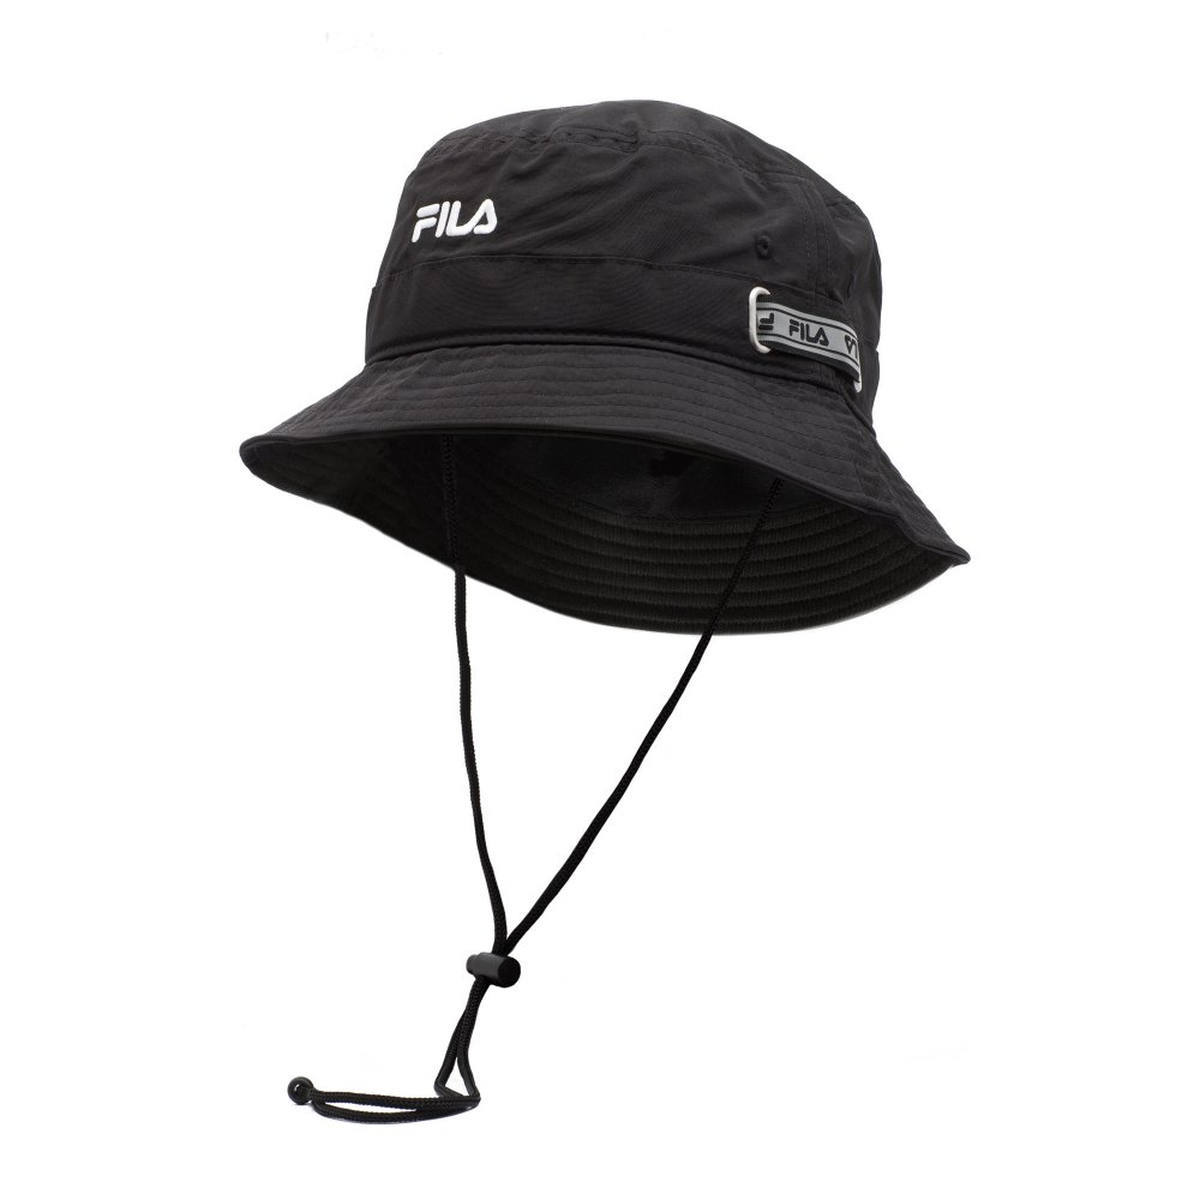 fila fishing bucket